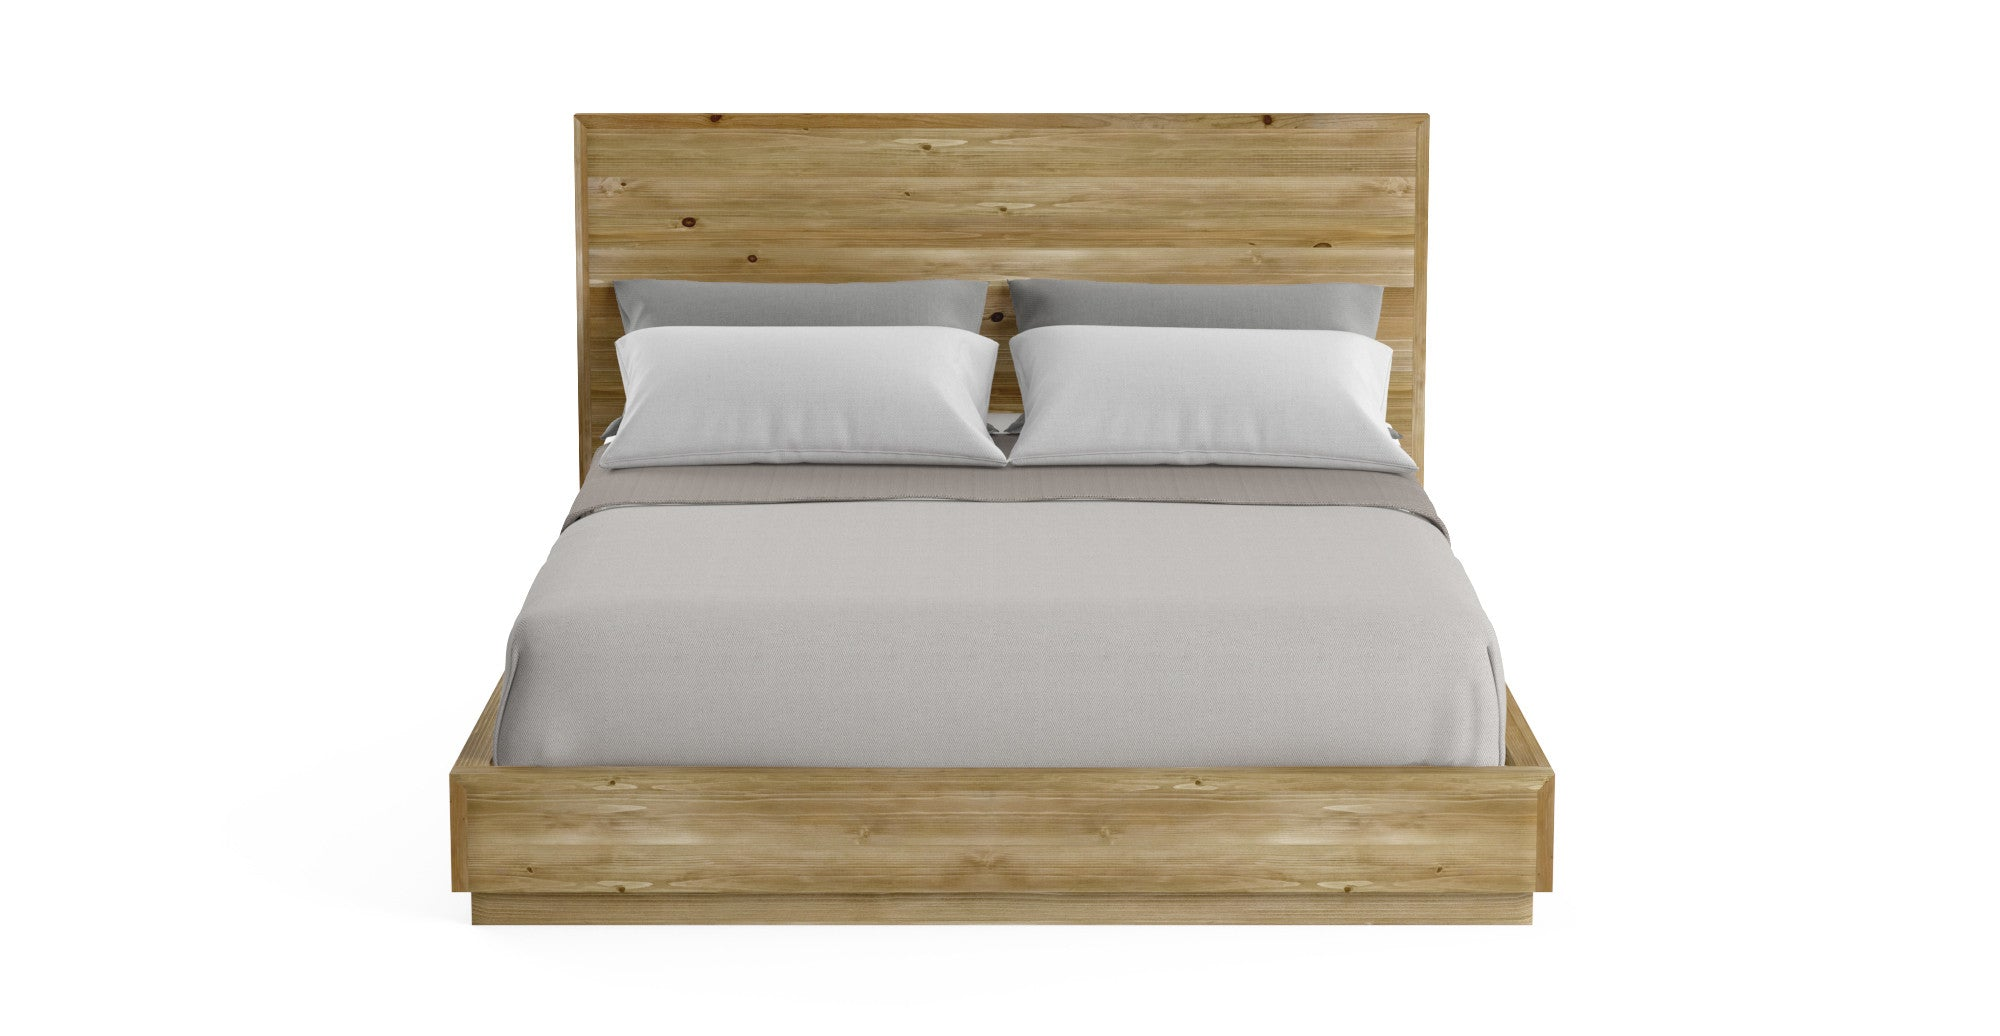 Bruin wooden queen size bed frame for Queen size bed frame